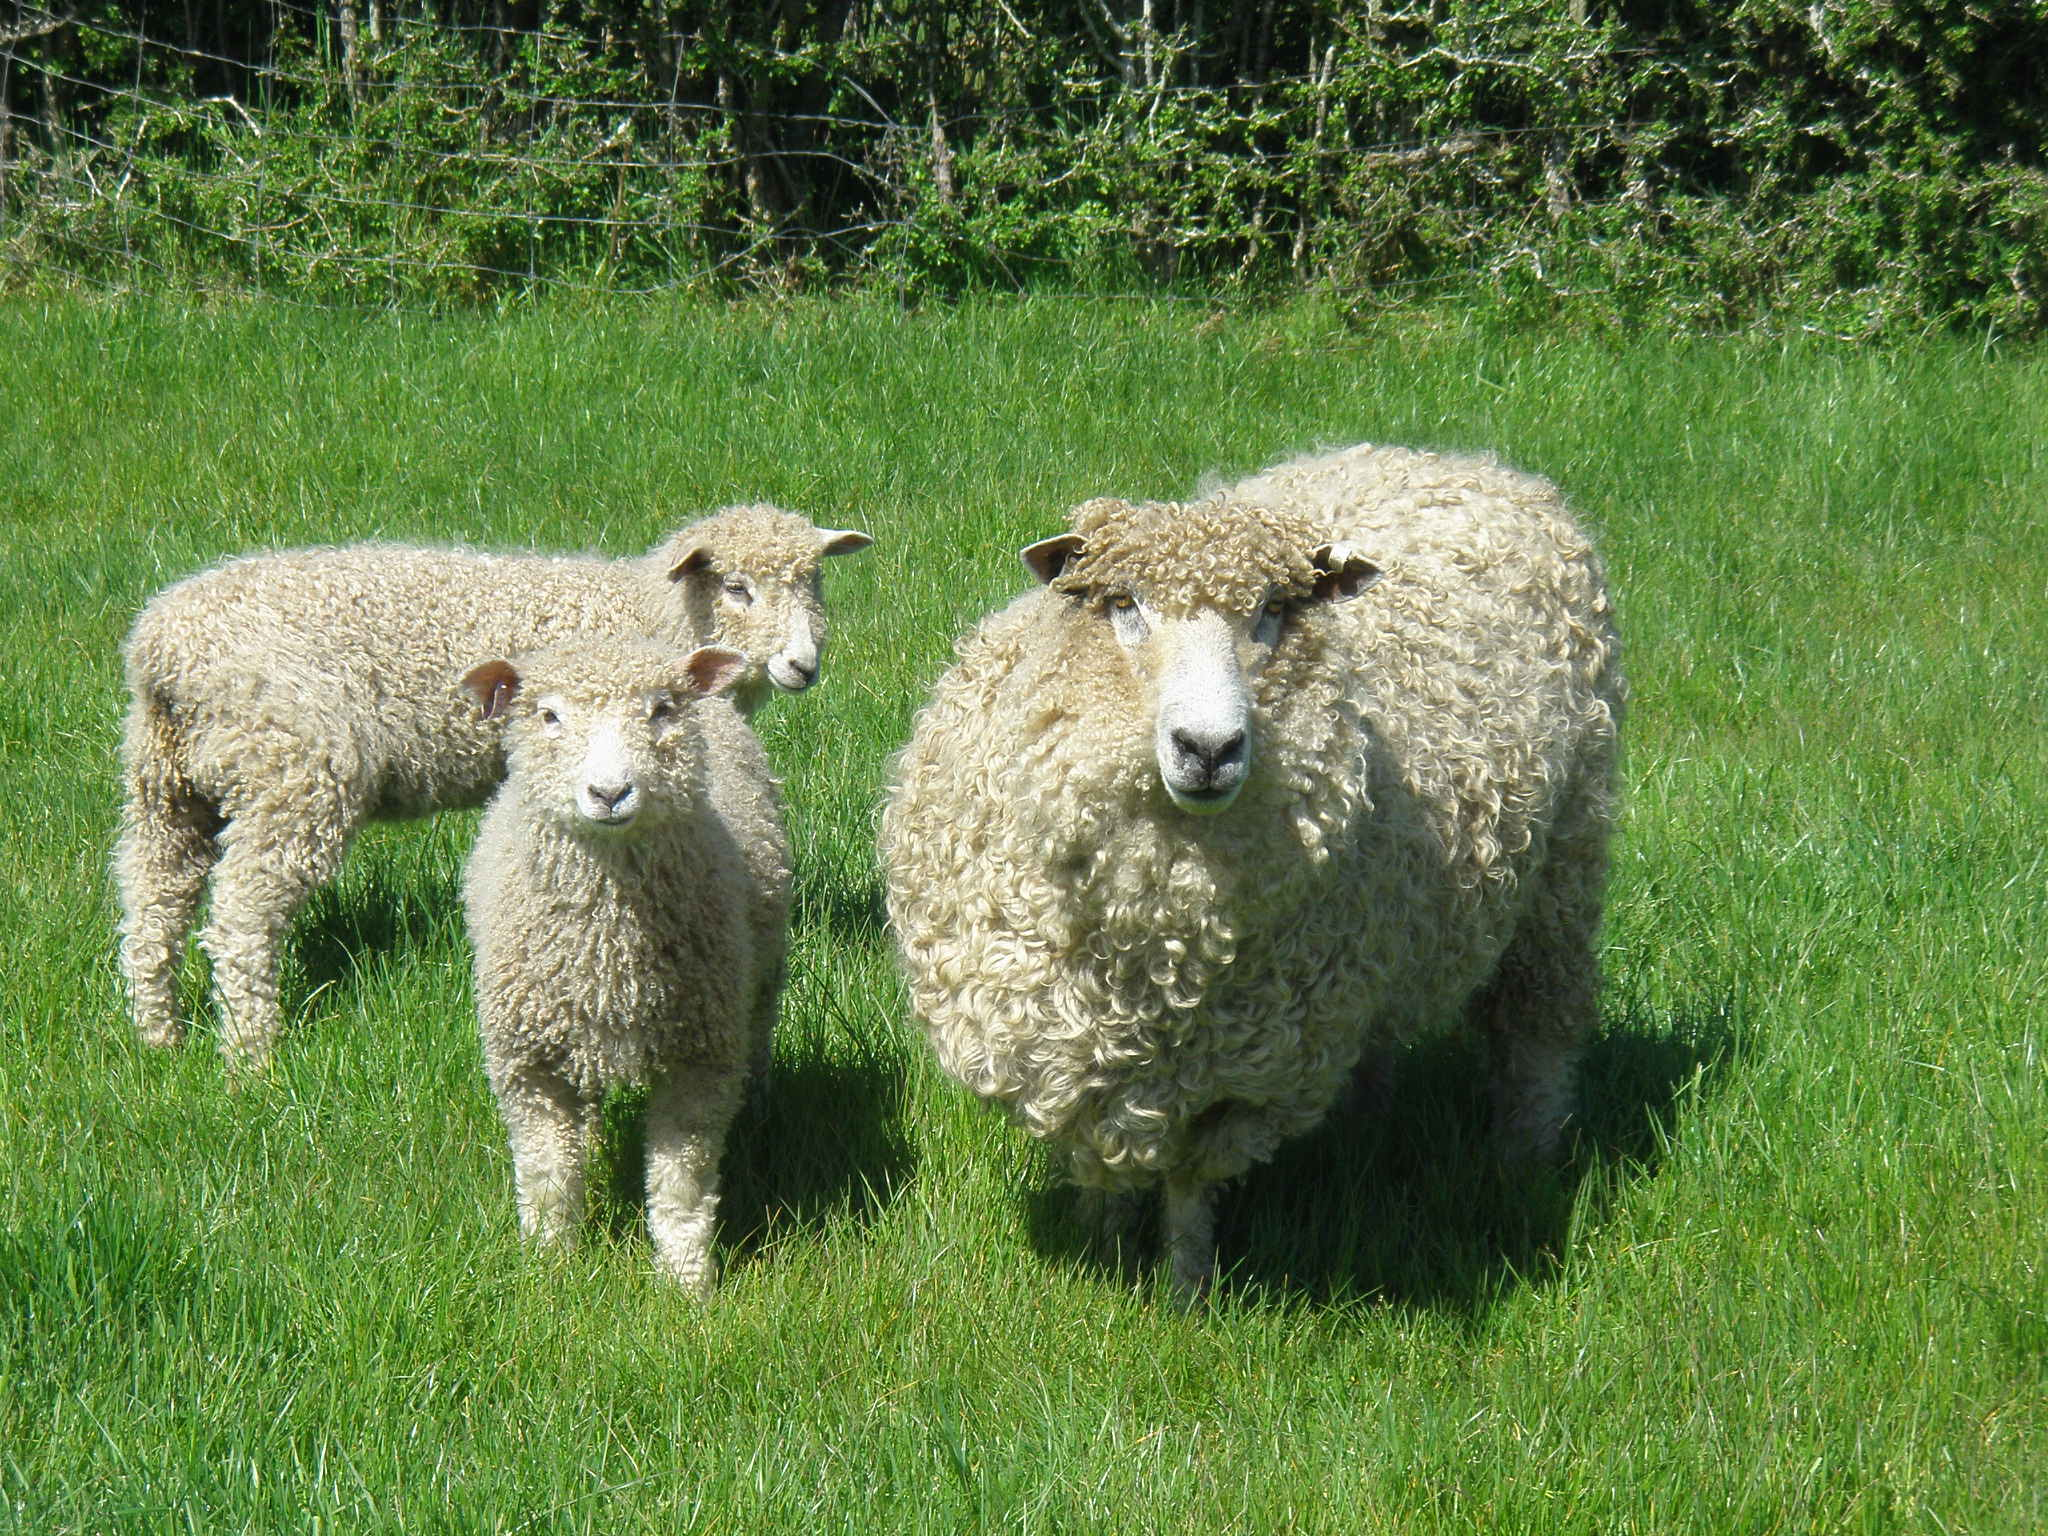 Ewe and lambs showing off their fleece on a sunny day at Melton Park